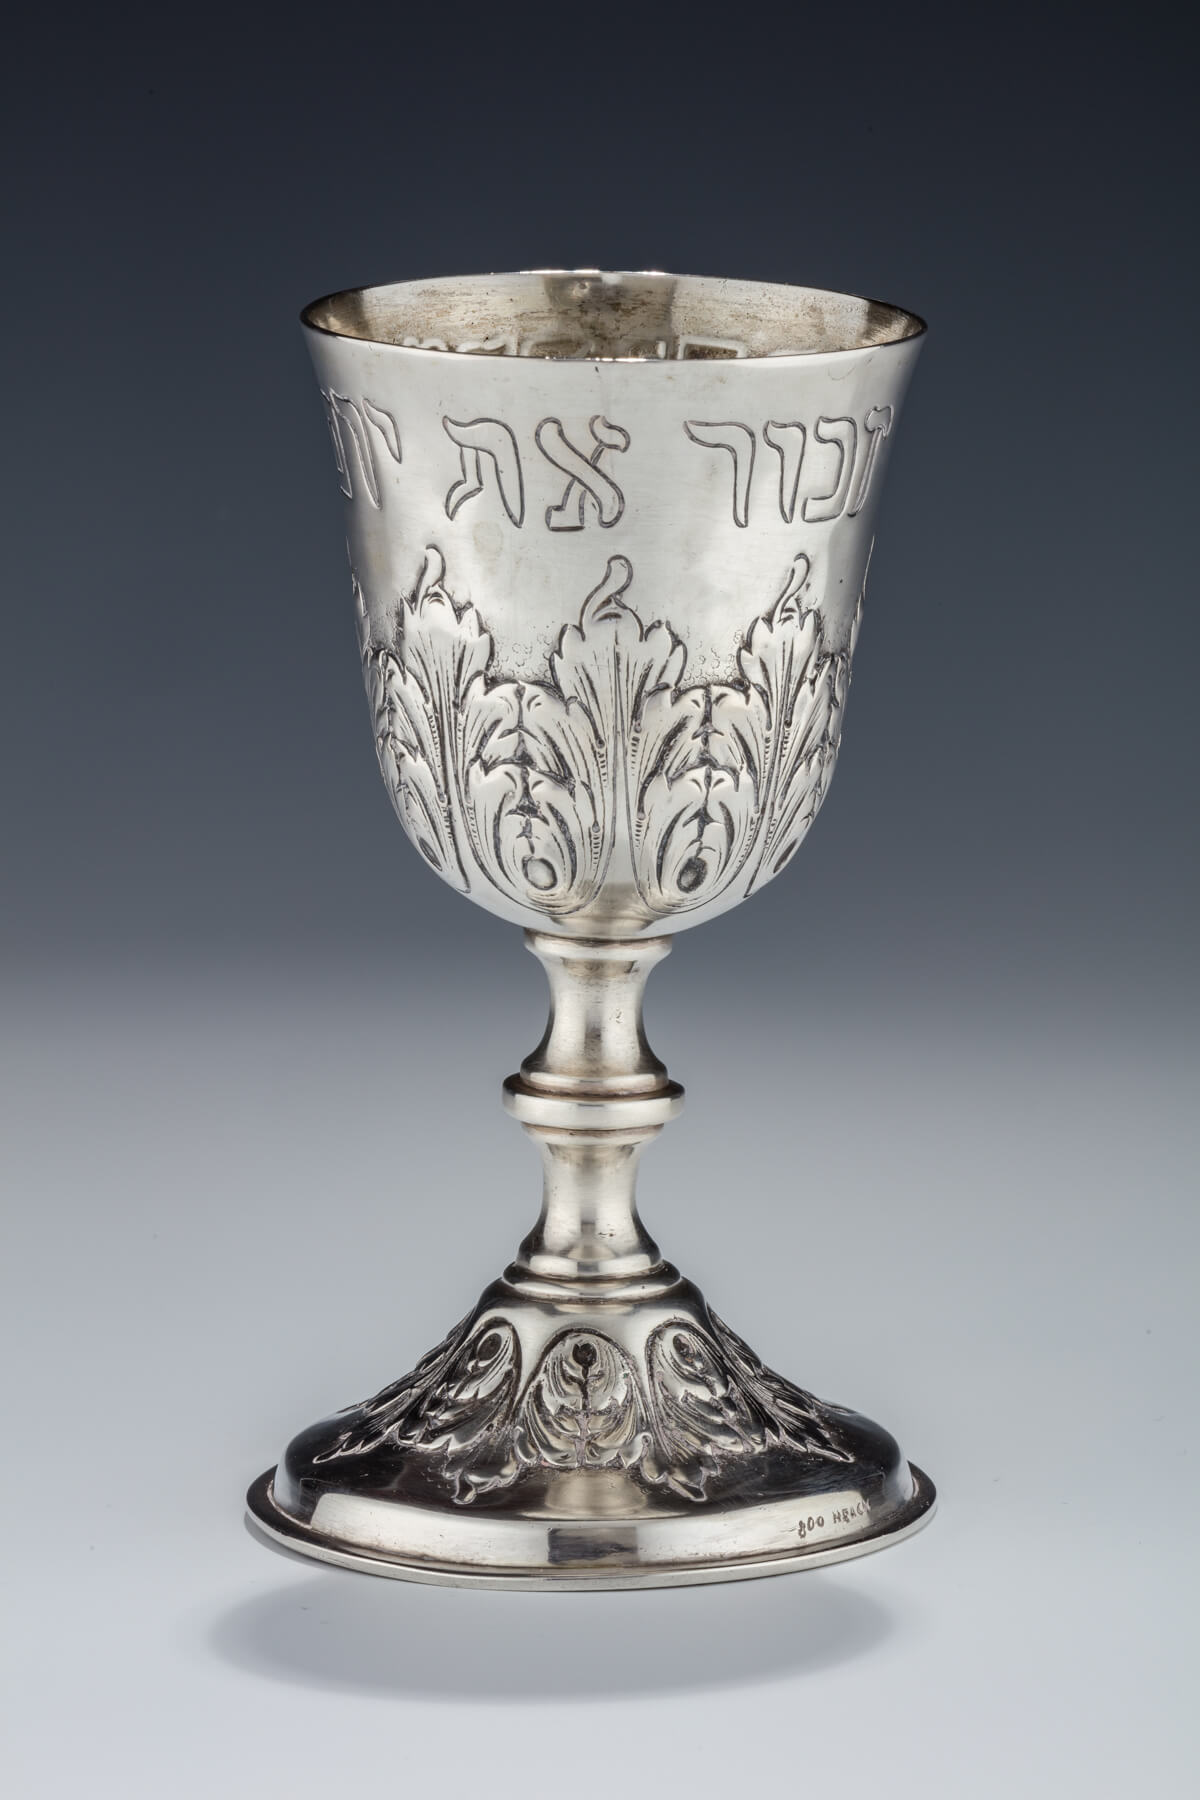 012. A Large Silver Kiddush Cup